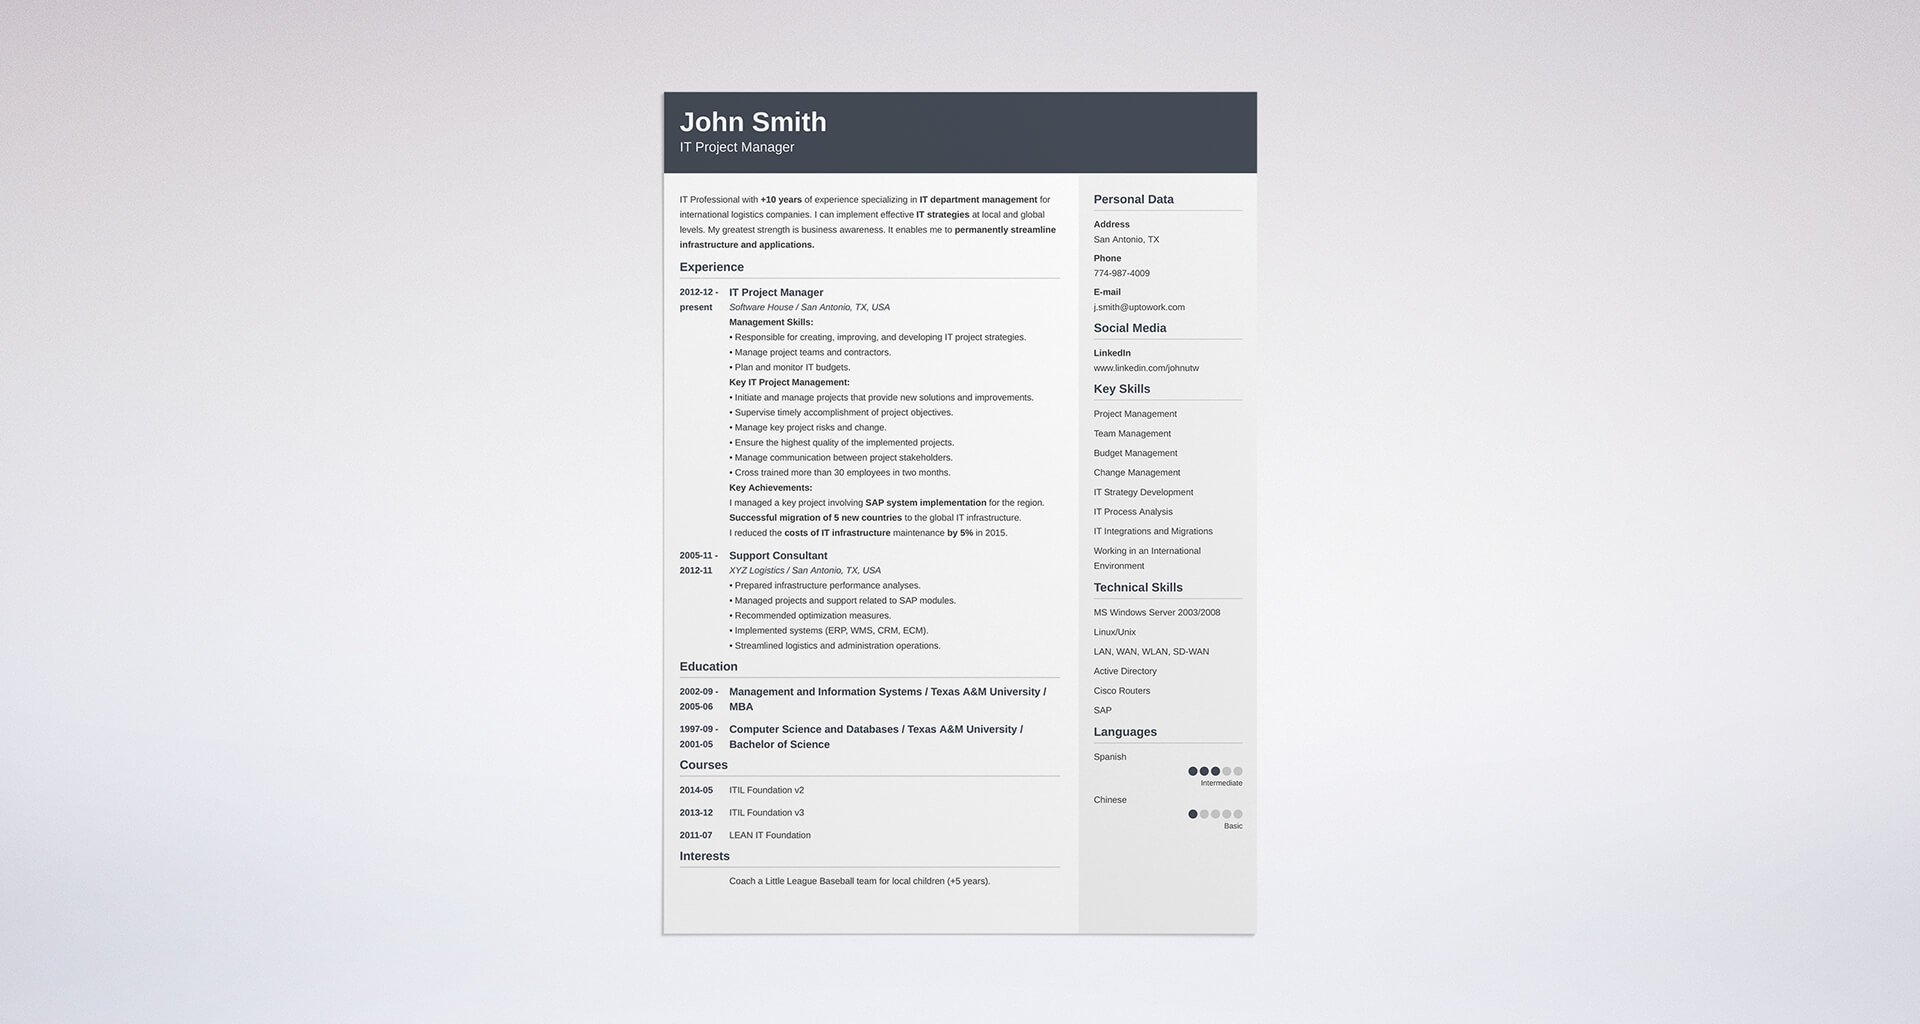 resume formats pick the best one in 3 steps examples templates - The Best Resume Formats